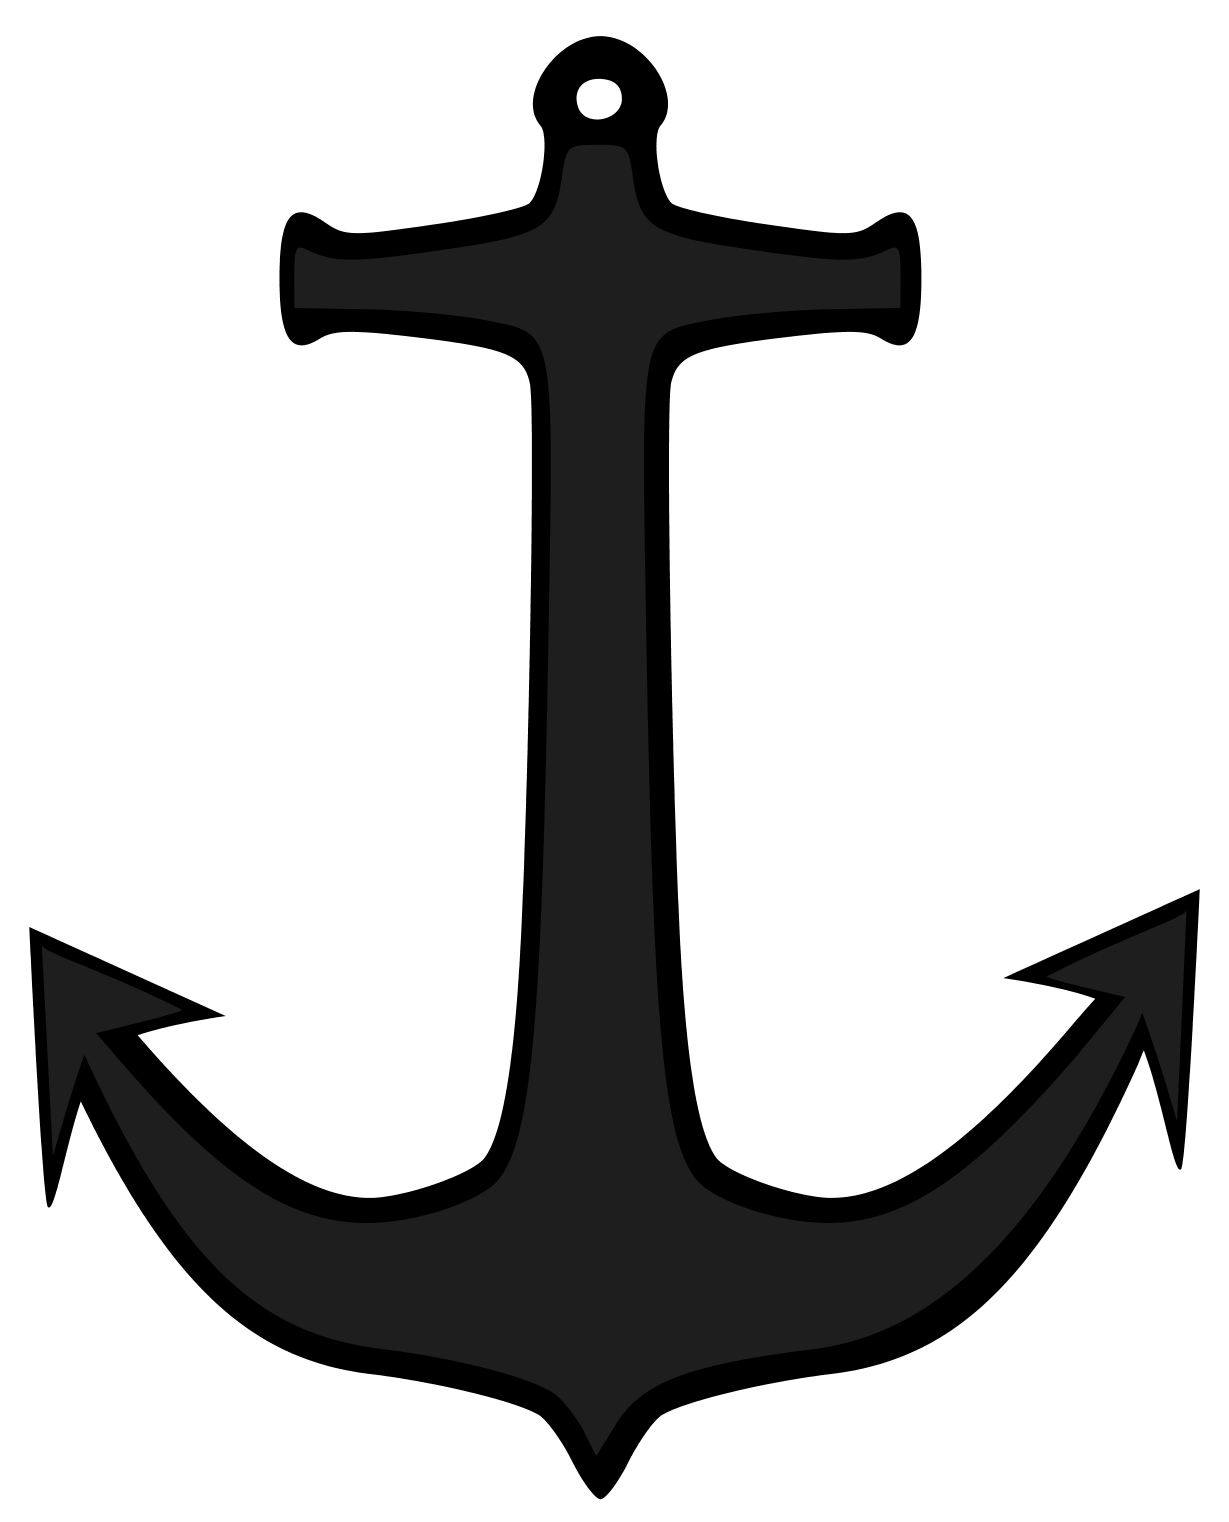 Anchor clipart png. Images free download